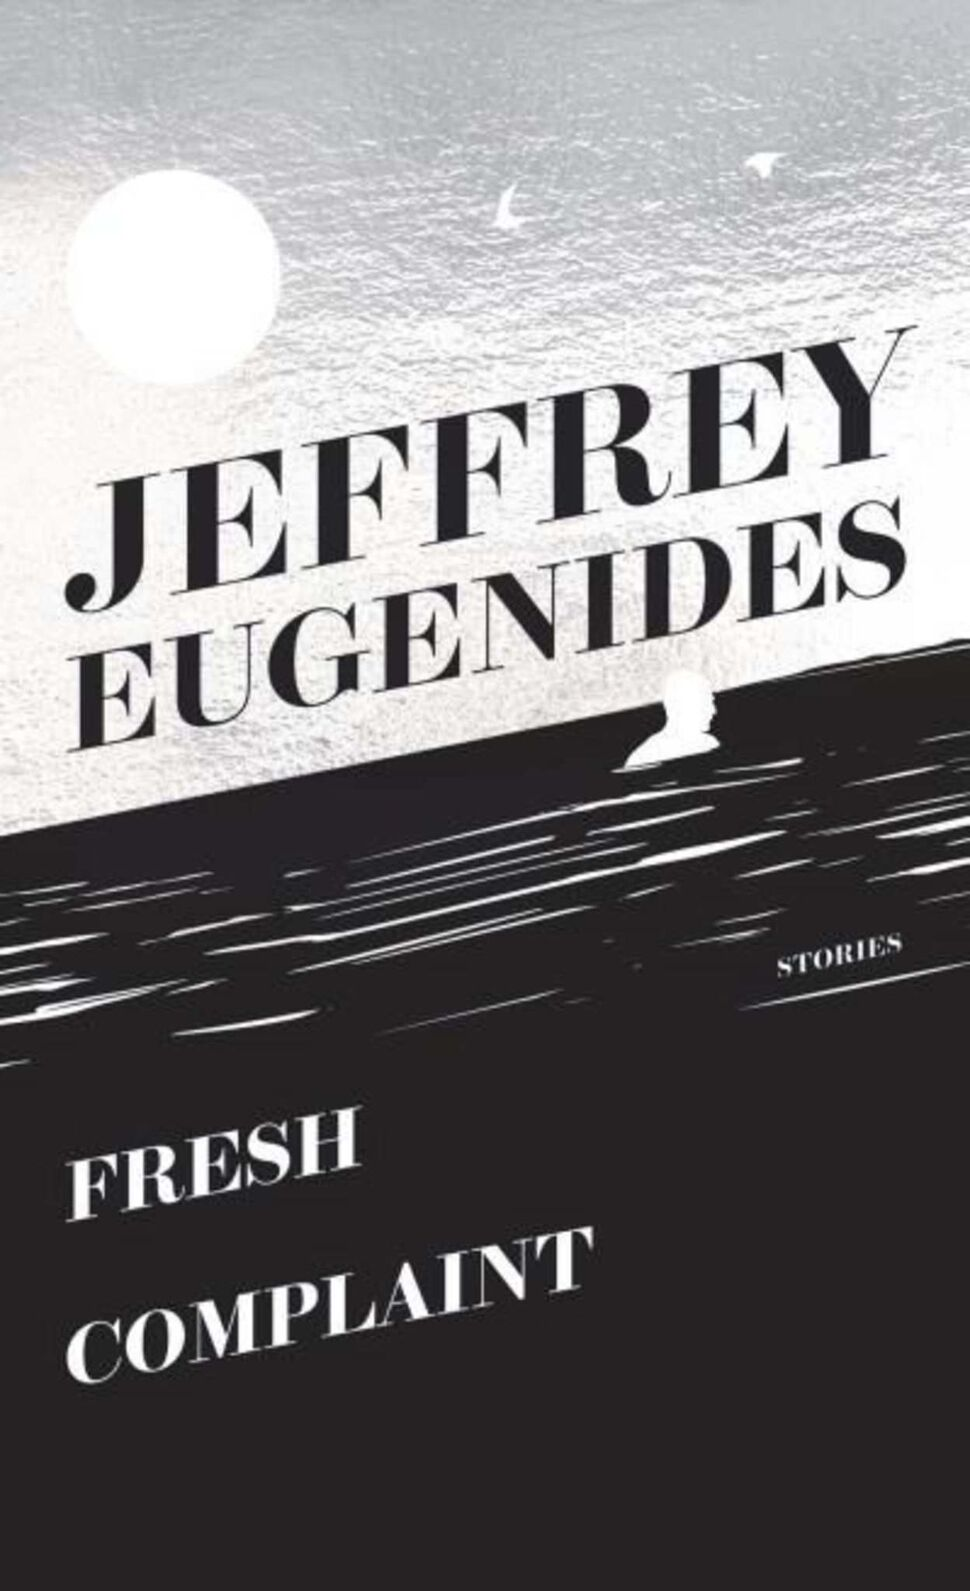 Fresh Complaint: Stories</p><p>By Jeffrey Eugenides</p><p>Knopf Canada, Oct. 3</p><p>This collection of stories by Eugenides (Middlesex, The Virgin Suicides) brings together new and previously published works of short fiction that span three decades of his career, including many that appeared in the New Yorker magazine.</p>